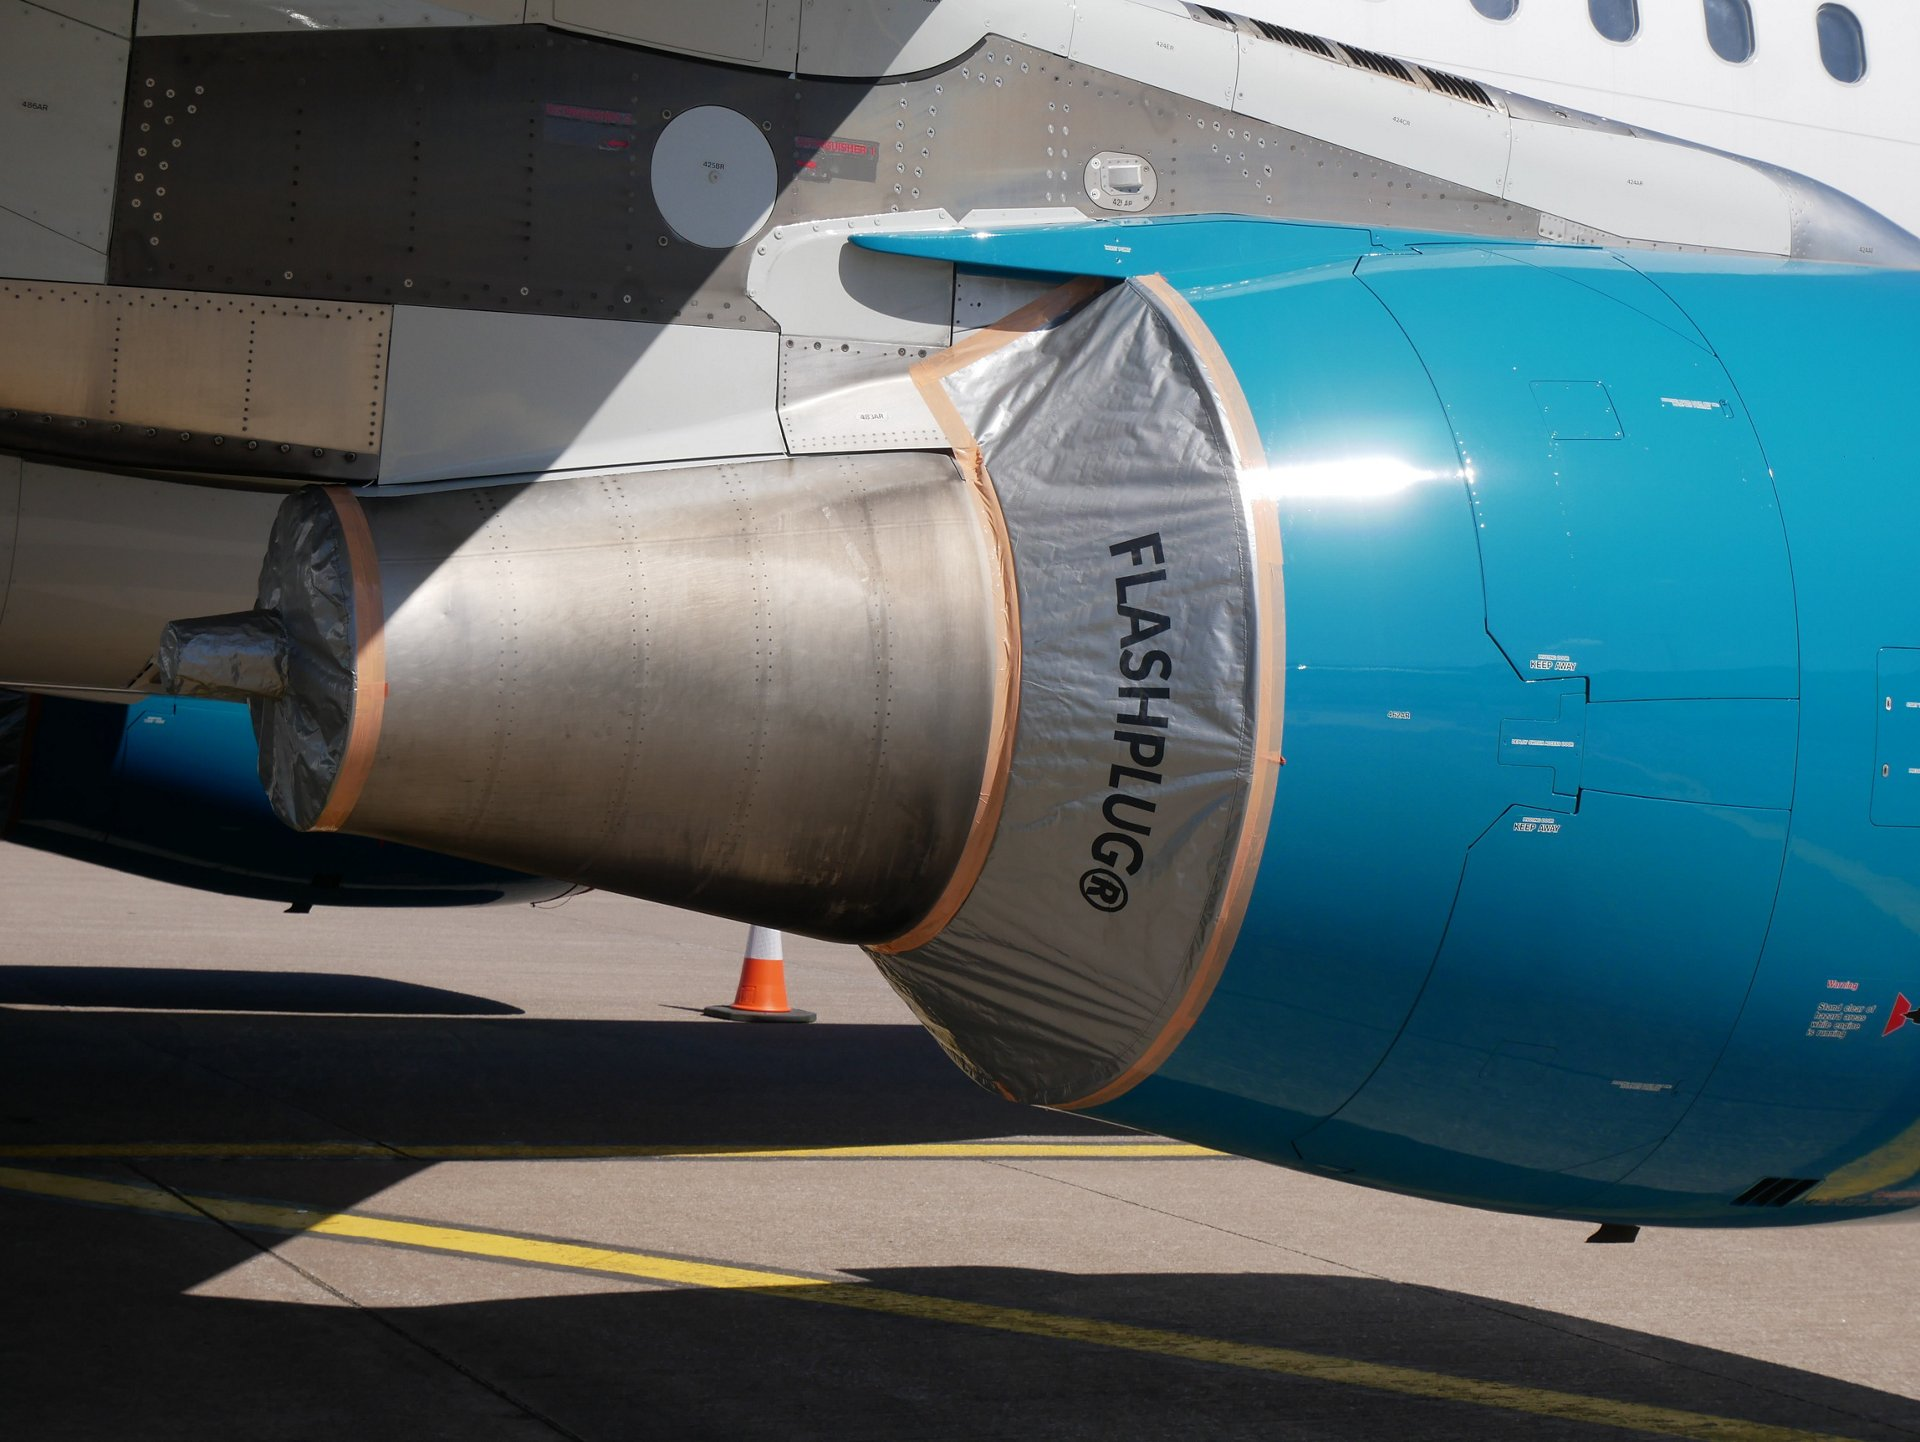 Satair now offers the newly launched FLASHPLUG® quick engine preservation solution developed by J.B. Roche in collaboration with Airbus - a real cost and time-saving innovation for parked aircraft.